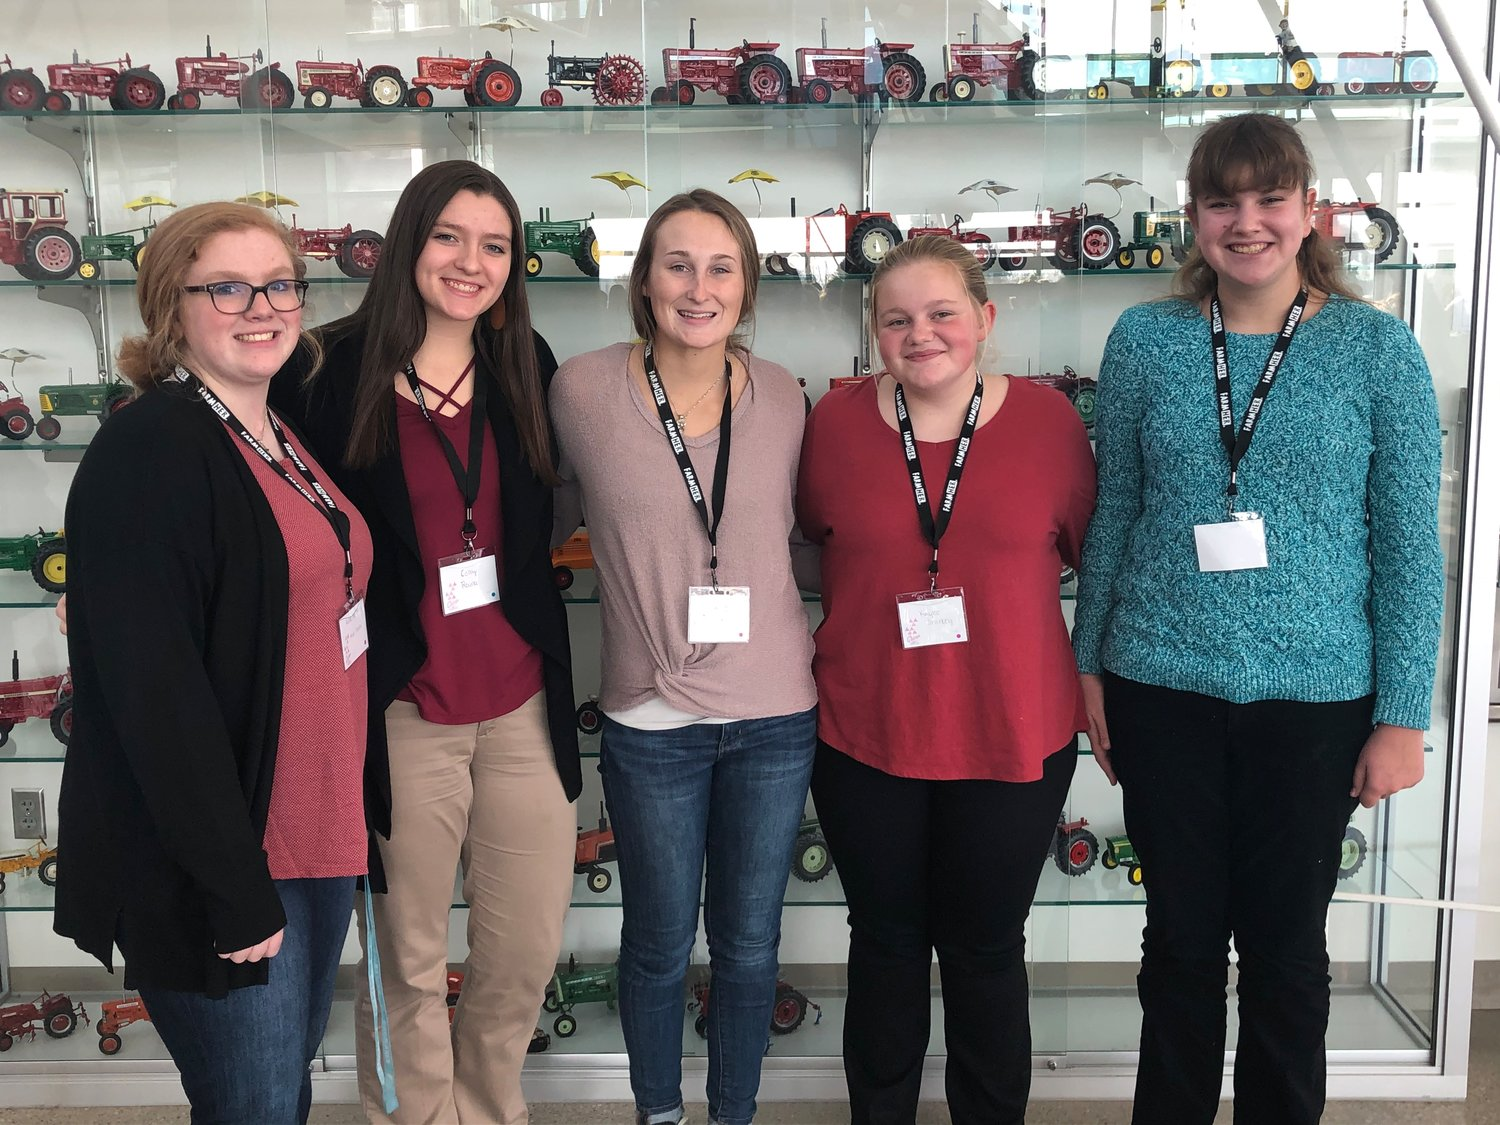 Mid-Prairie FFA members who attended the Nov. 15 FarmHer conference in Ankeny were (from left) Annie Morrison, Colby Rourke, Jaselyn Robertson, Kaylee Shirkey and Alexa Huber.